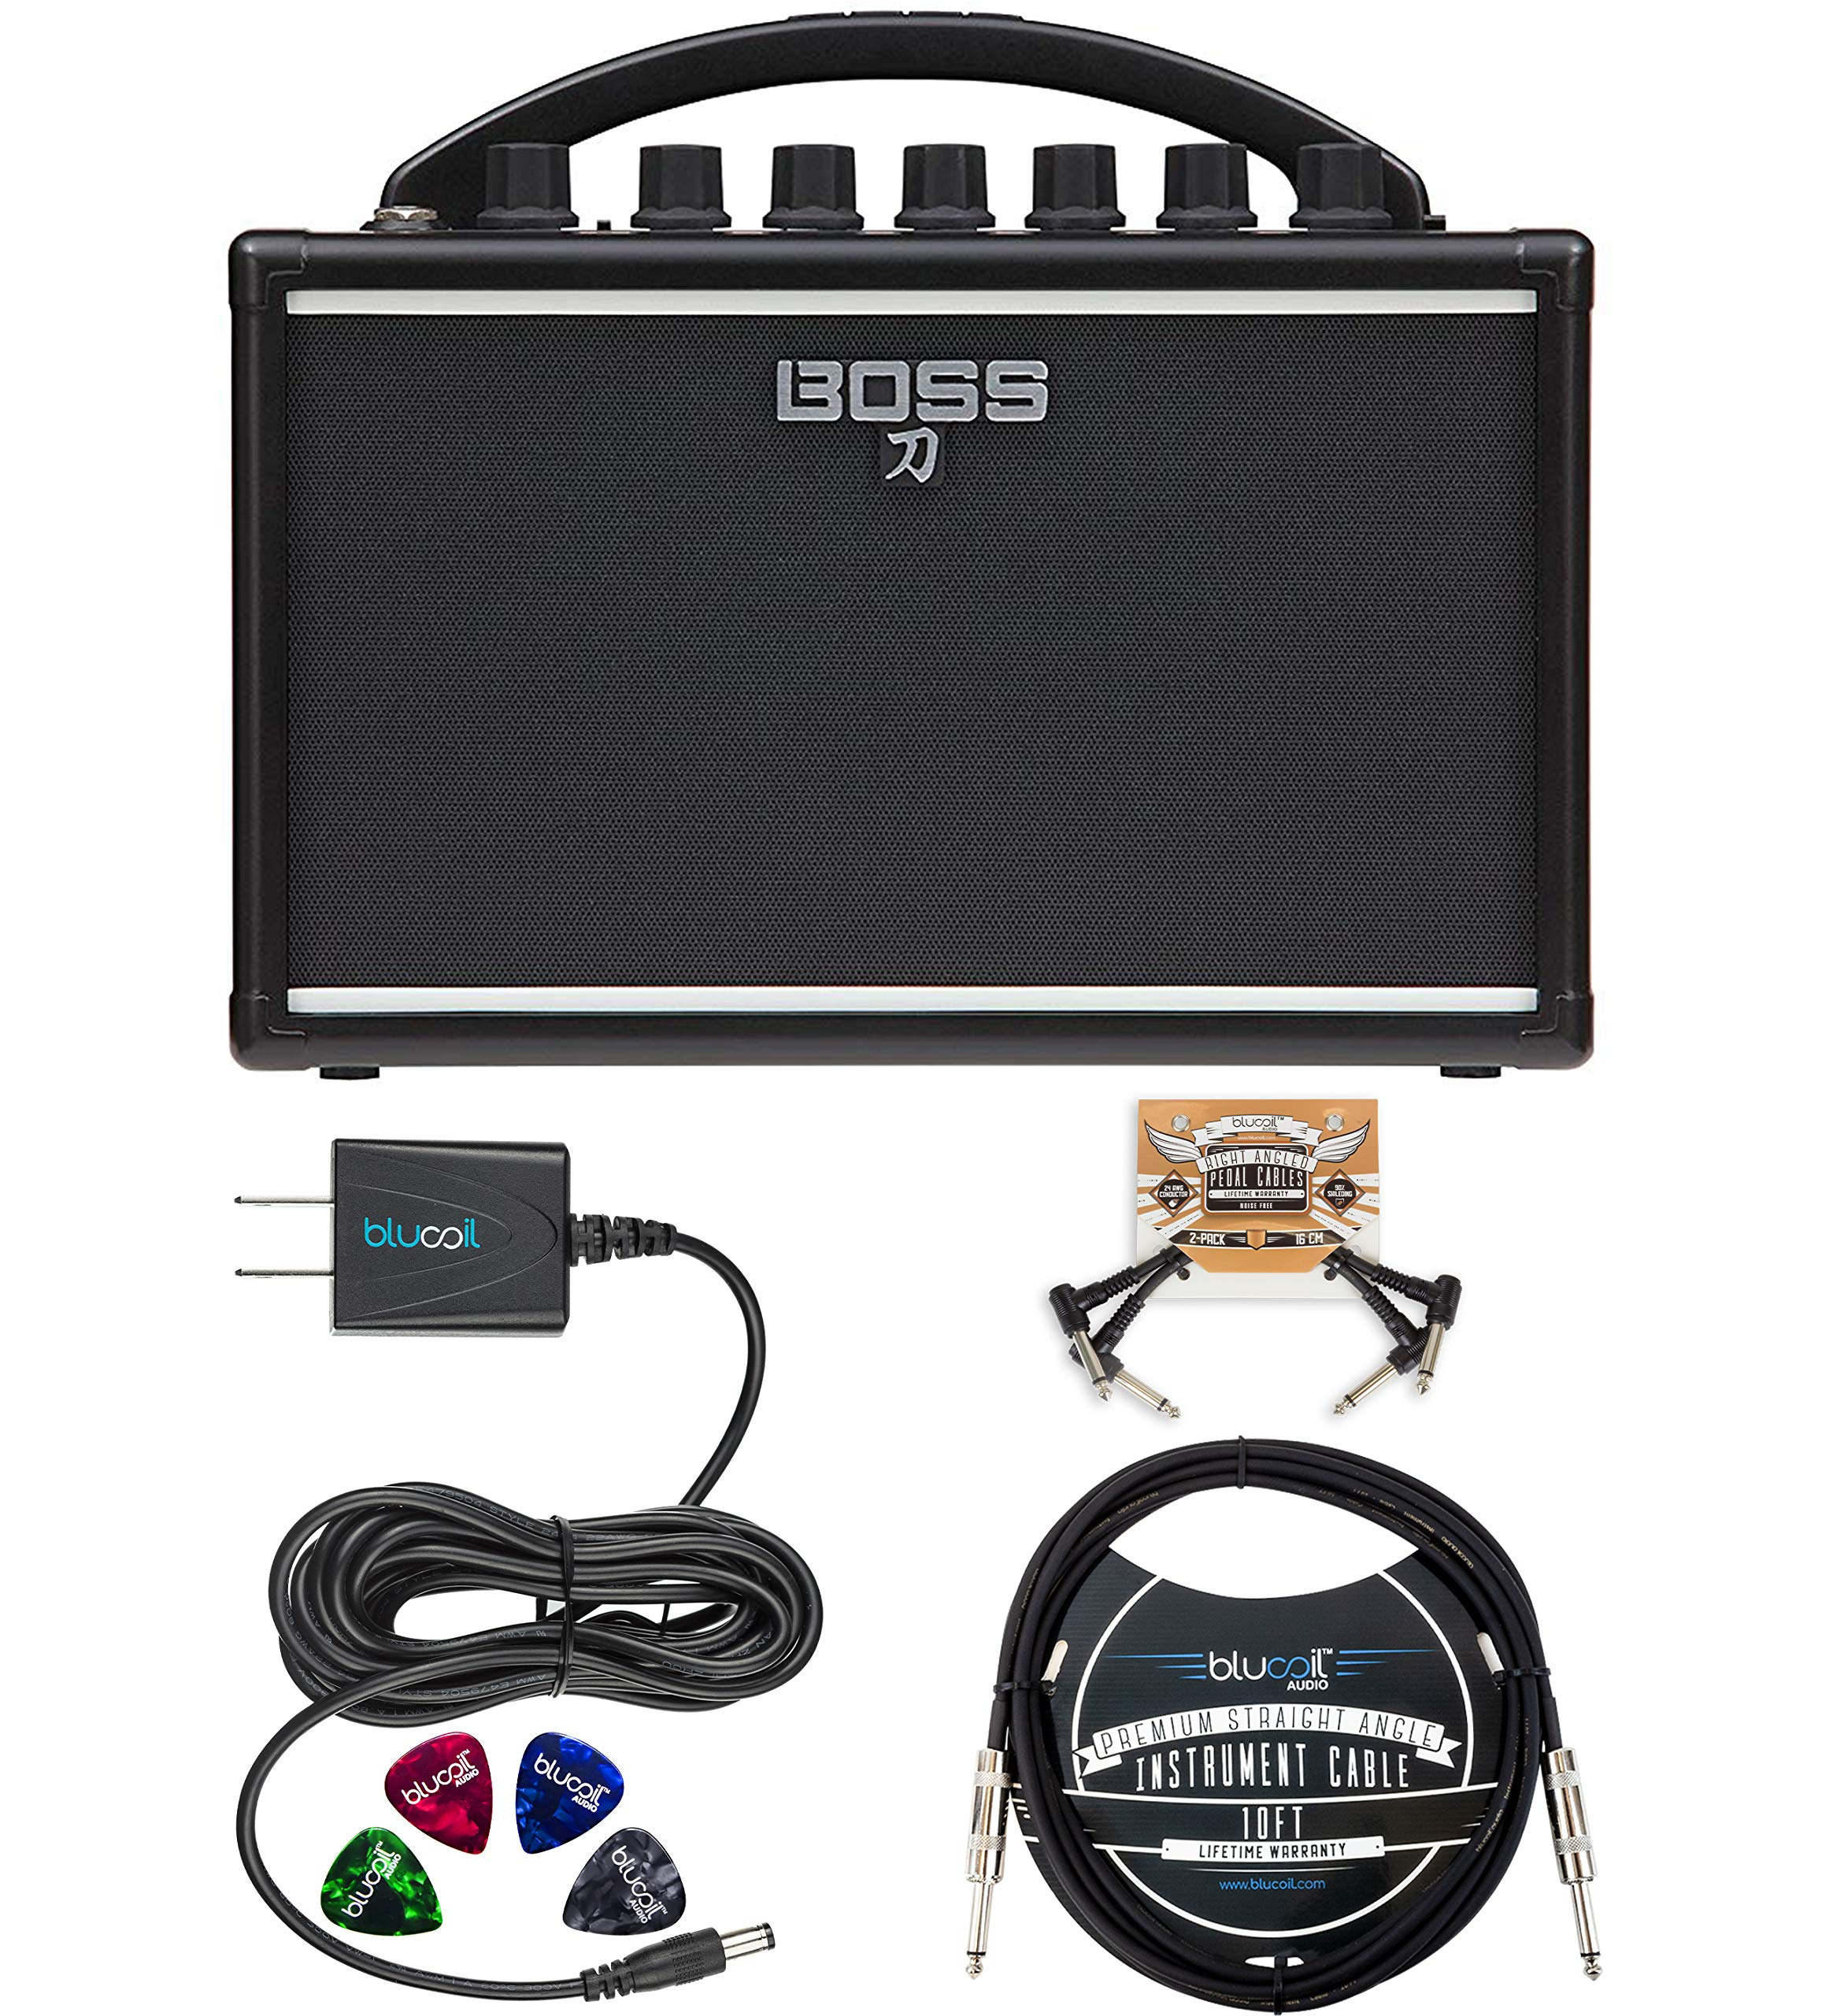 BOSS Katana Mini Amp 7W Solid State Amplifier Bundle with Blucoil Slim 9V 670ma Power Supply AC Adapter, Blucoil 10-FT Mono Instrument Cable, 2-Pack of Pedal Patch Cables, and 4x Guitar Picks by blucoil